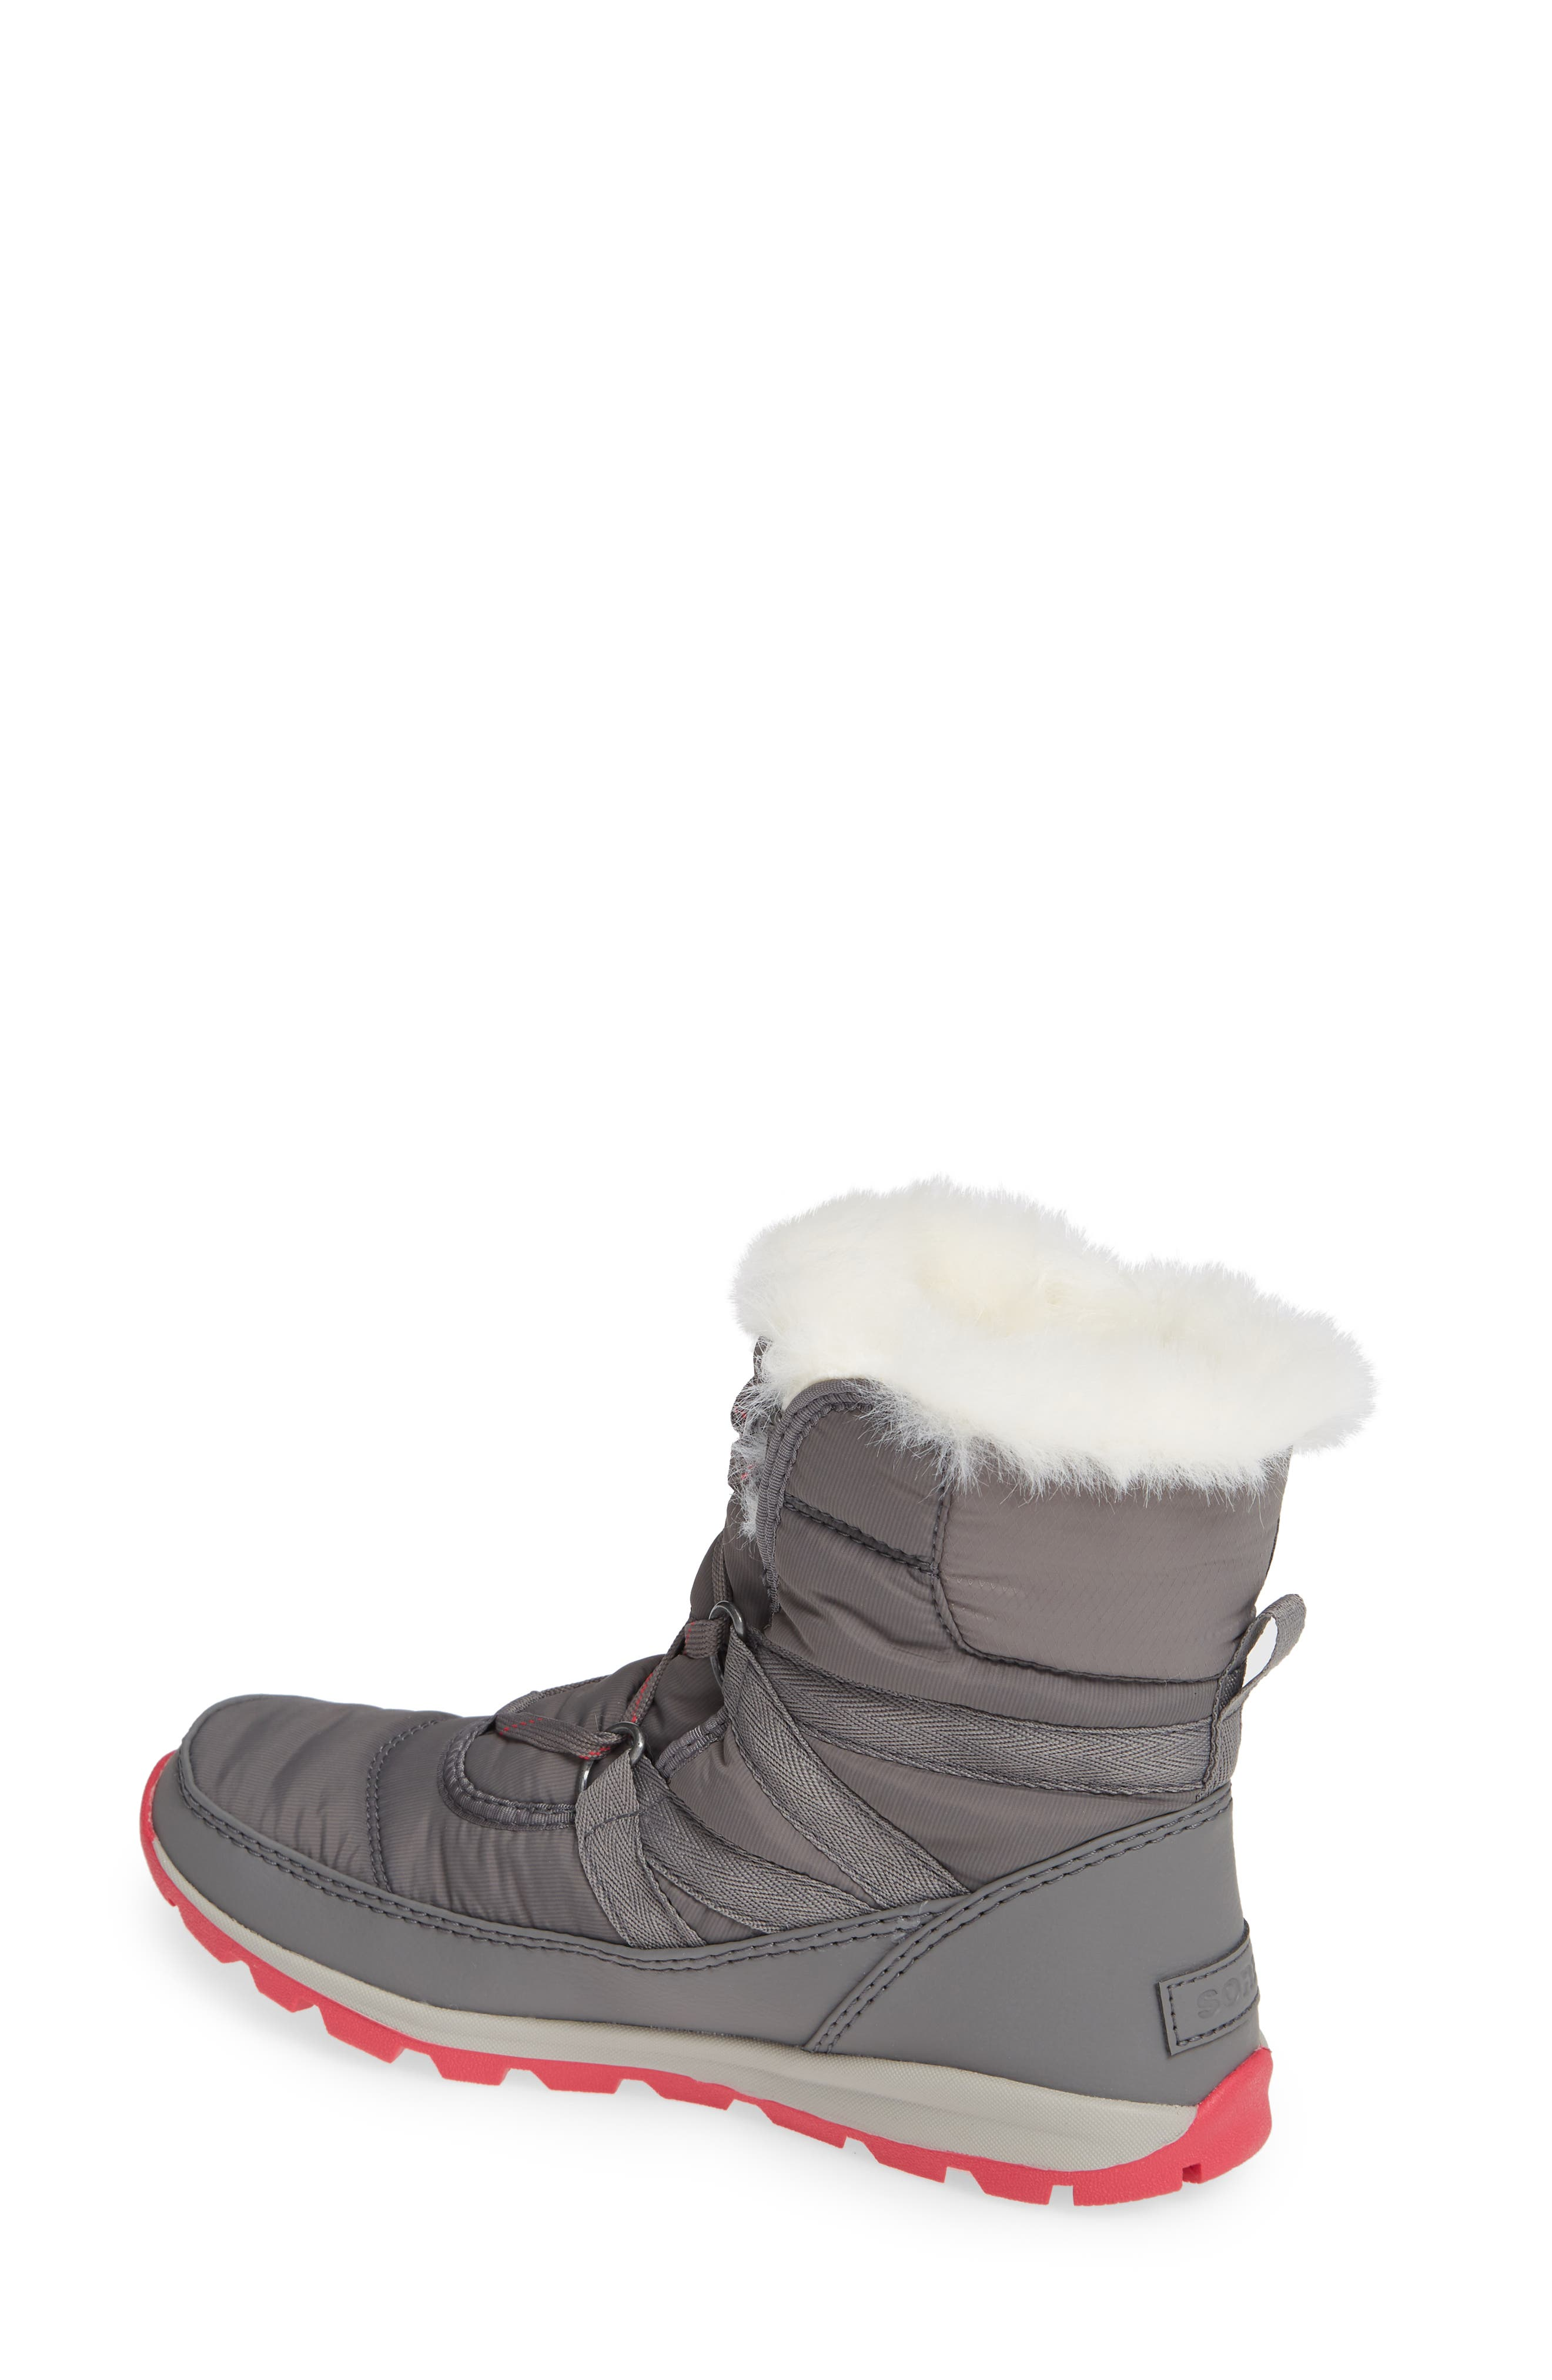 Whitney Snow Bootie,                             Alternate thumbnail 2, color,                             053